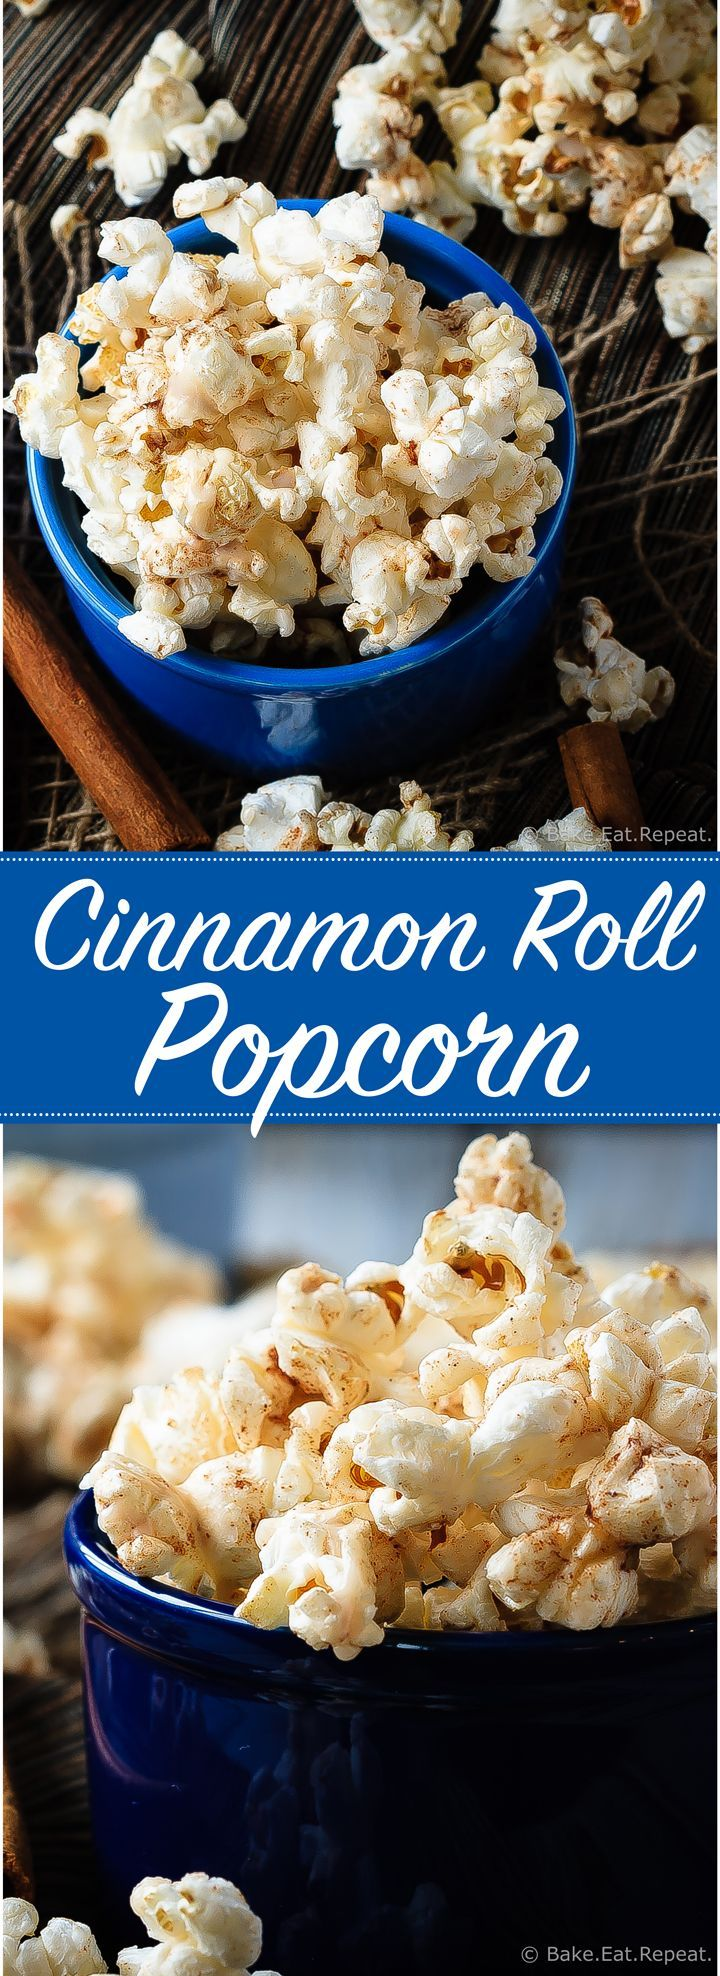 A great way to change up the usual movie night snack, this cinnamon roll popcorn is a wonderful sweet and salty snack that everyone will love!